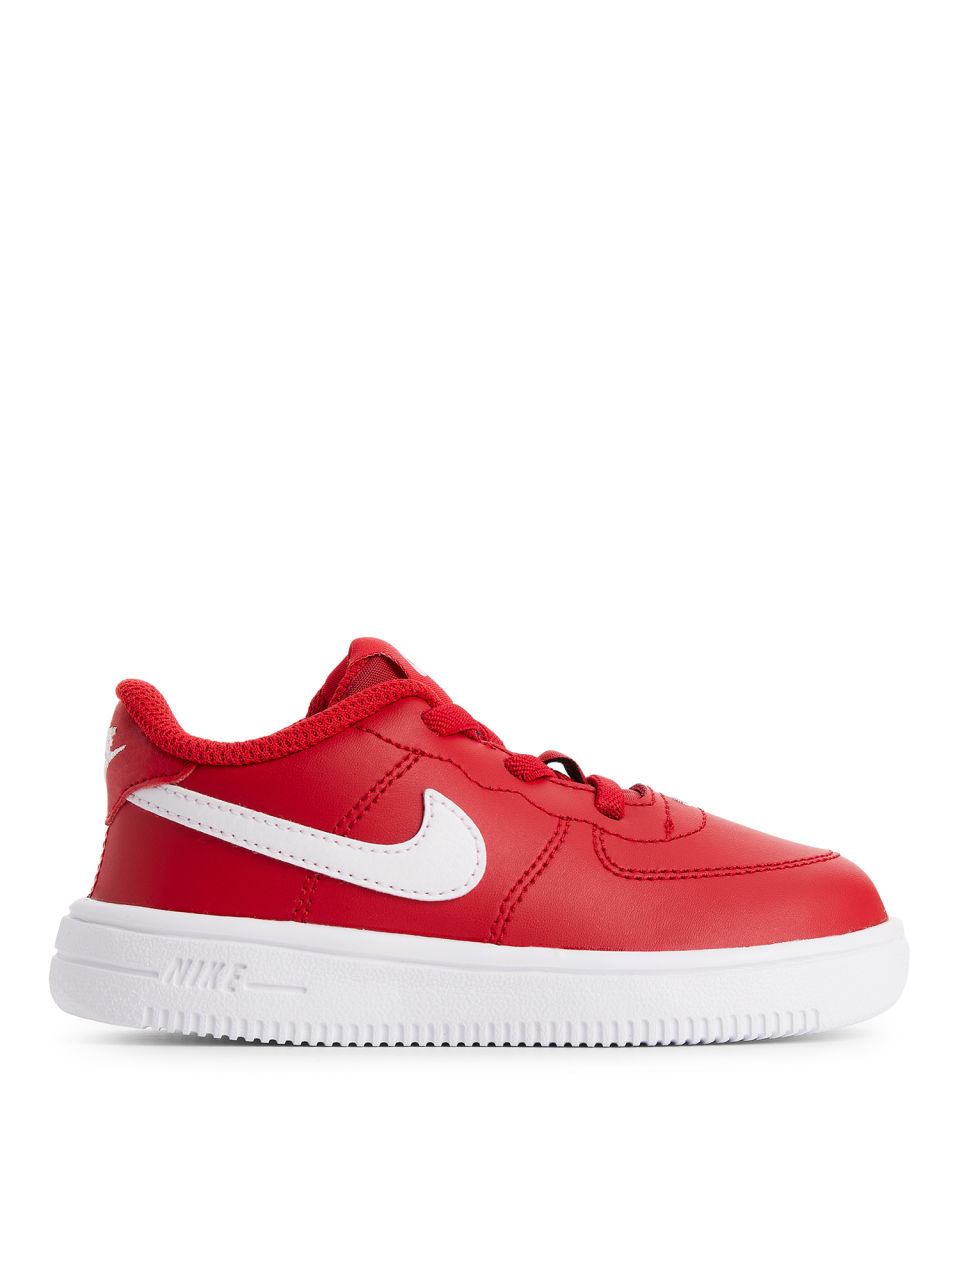 Nike Air Force 1 Toddler - Red